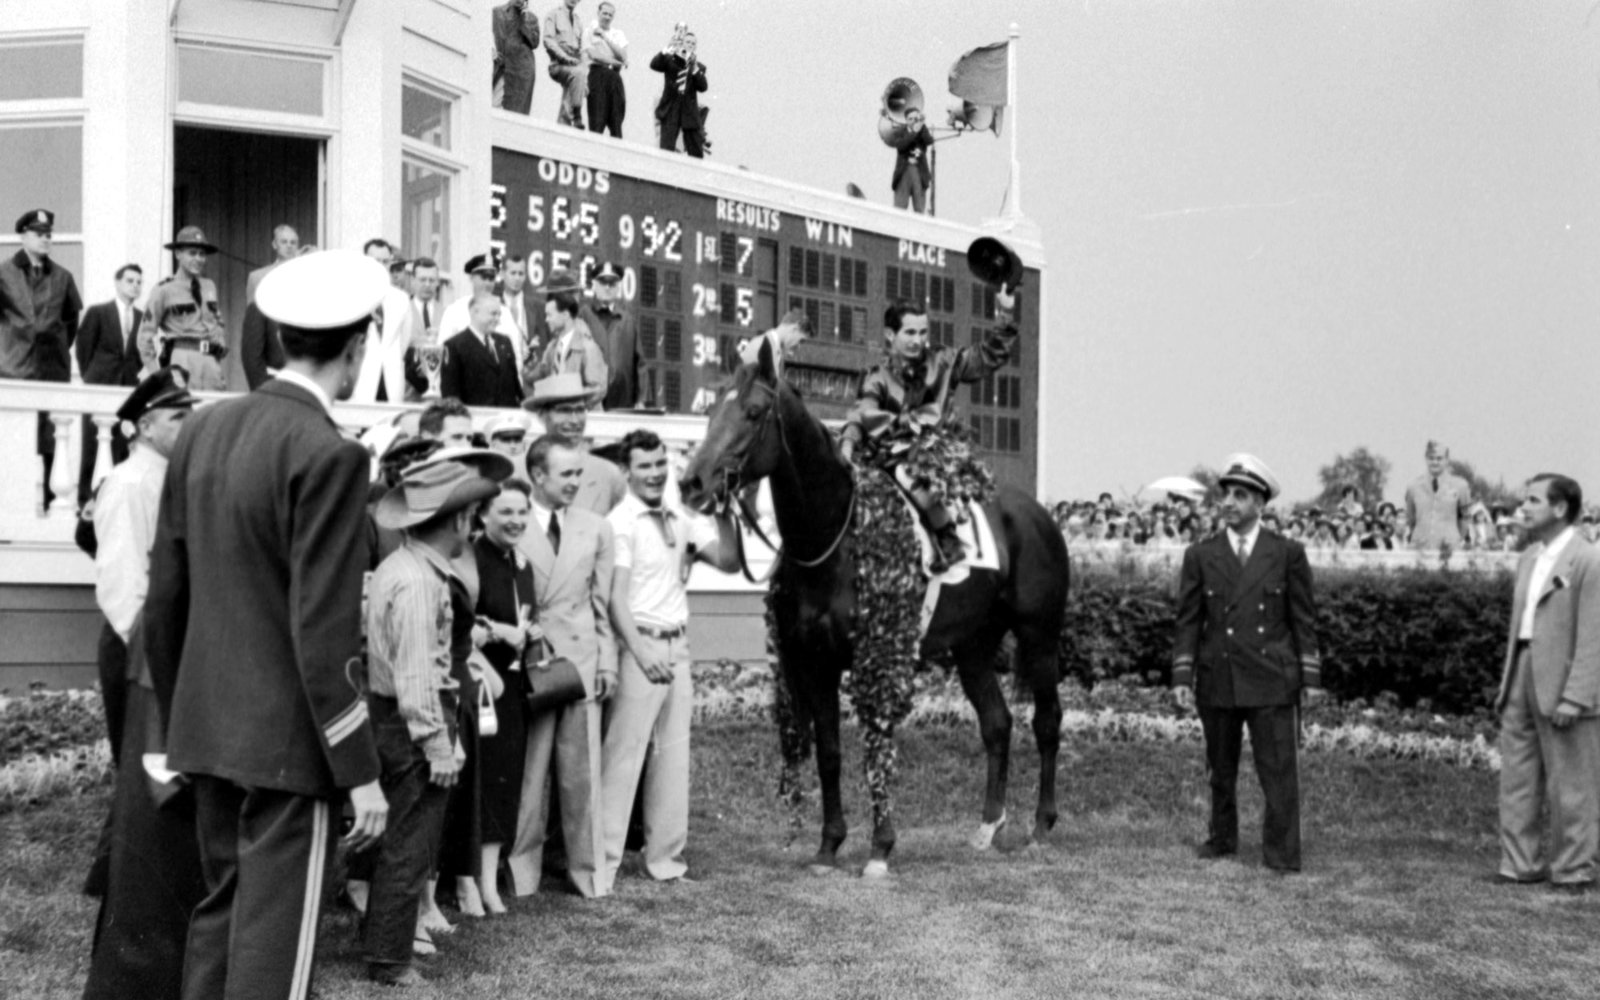 Kentucky Derby Winners 1955